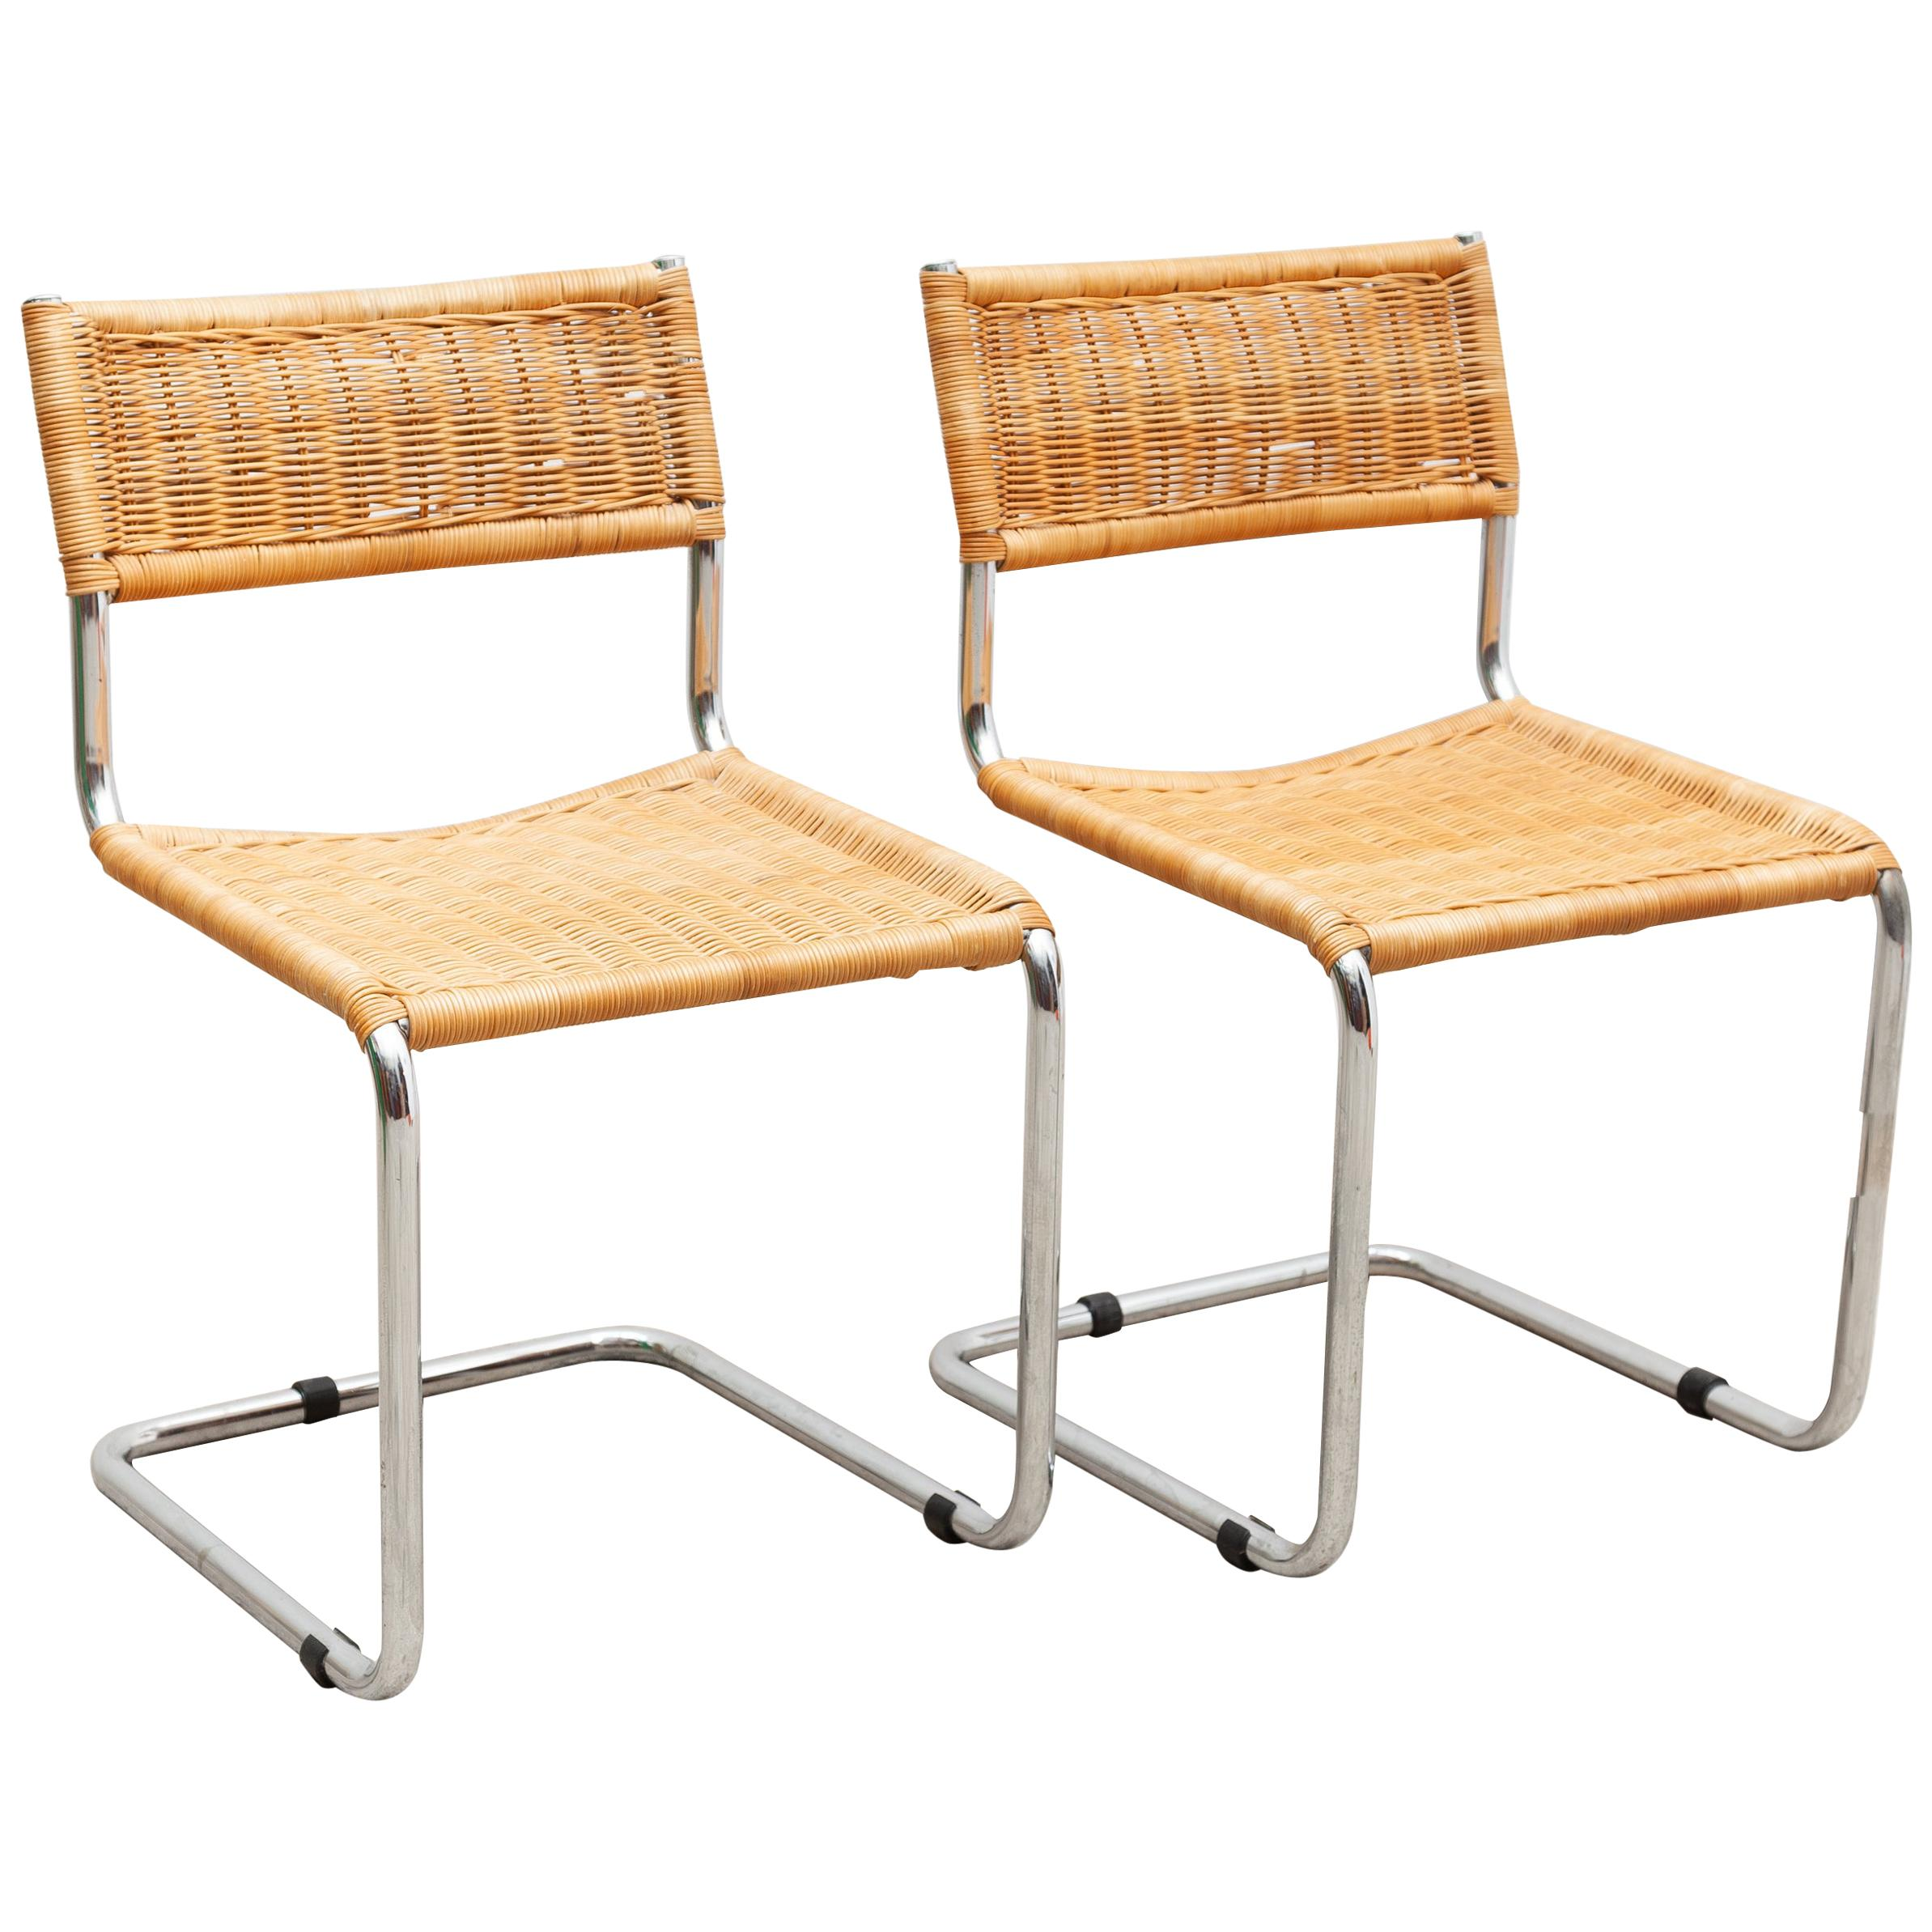 Set of Two Bauhaus Cantilever Chrome Woven Rattan Side Chairs 1960s Italy